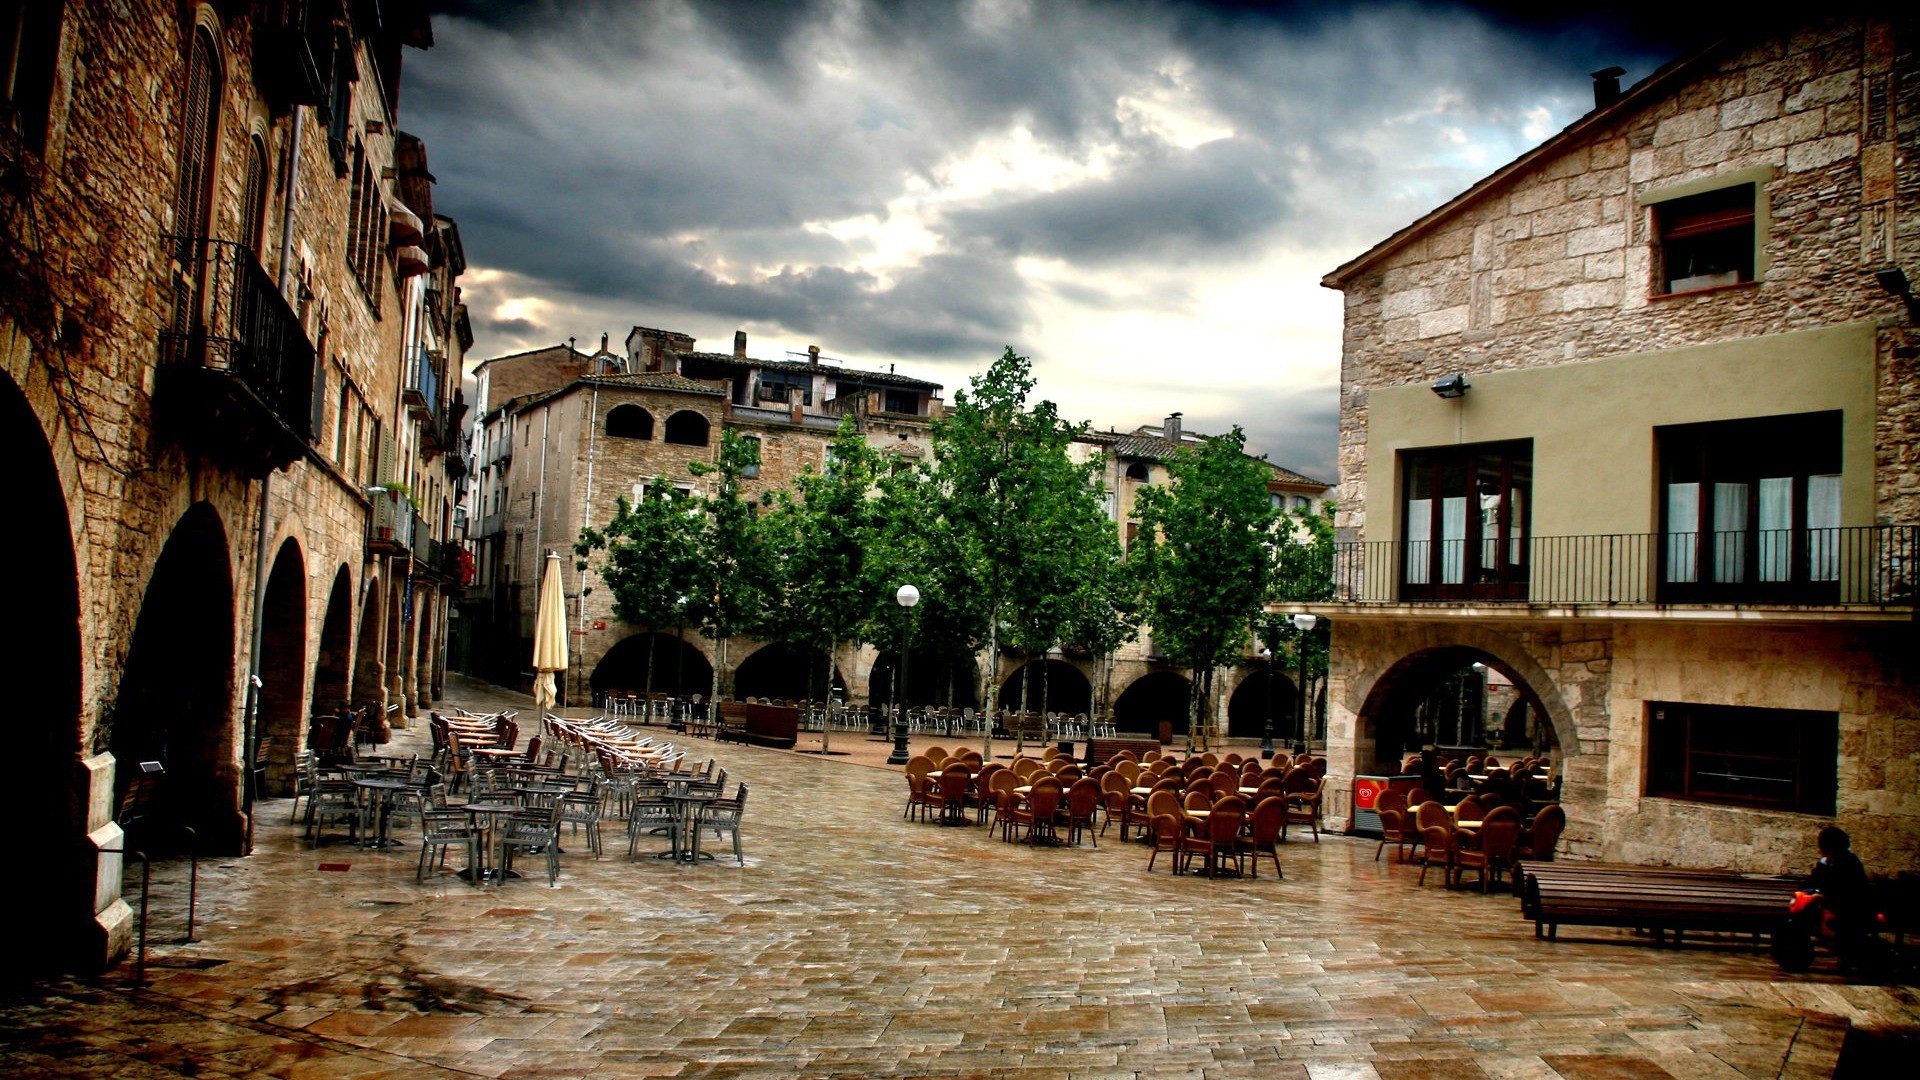 Spain Wallpaper Iphone Girona Is A City In The Northeast Of Catalonia Spain Full